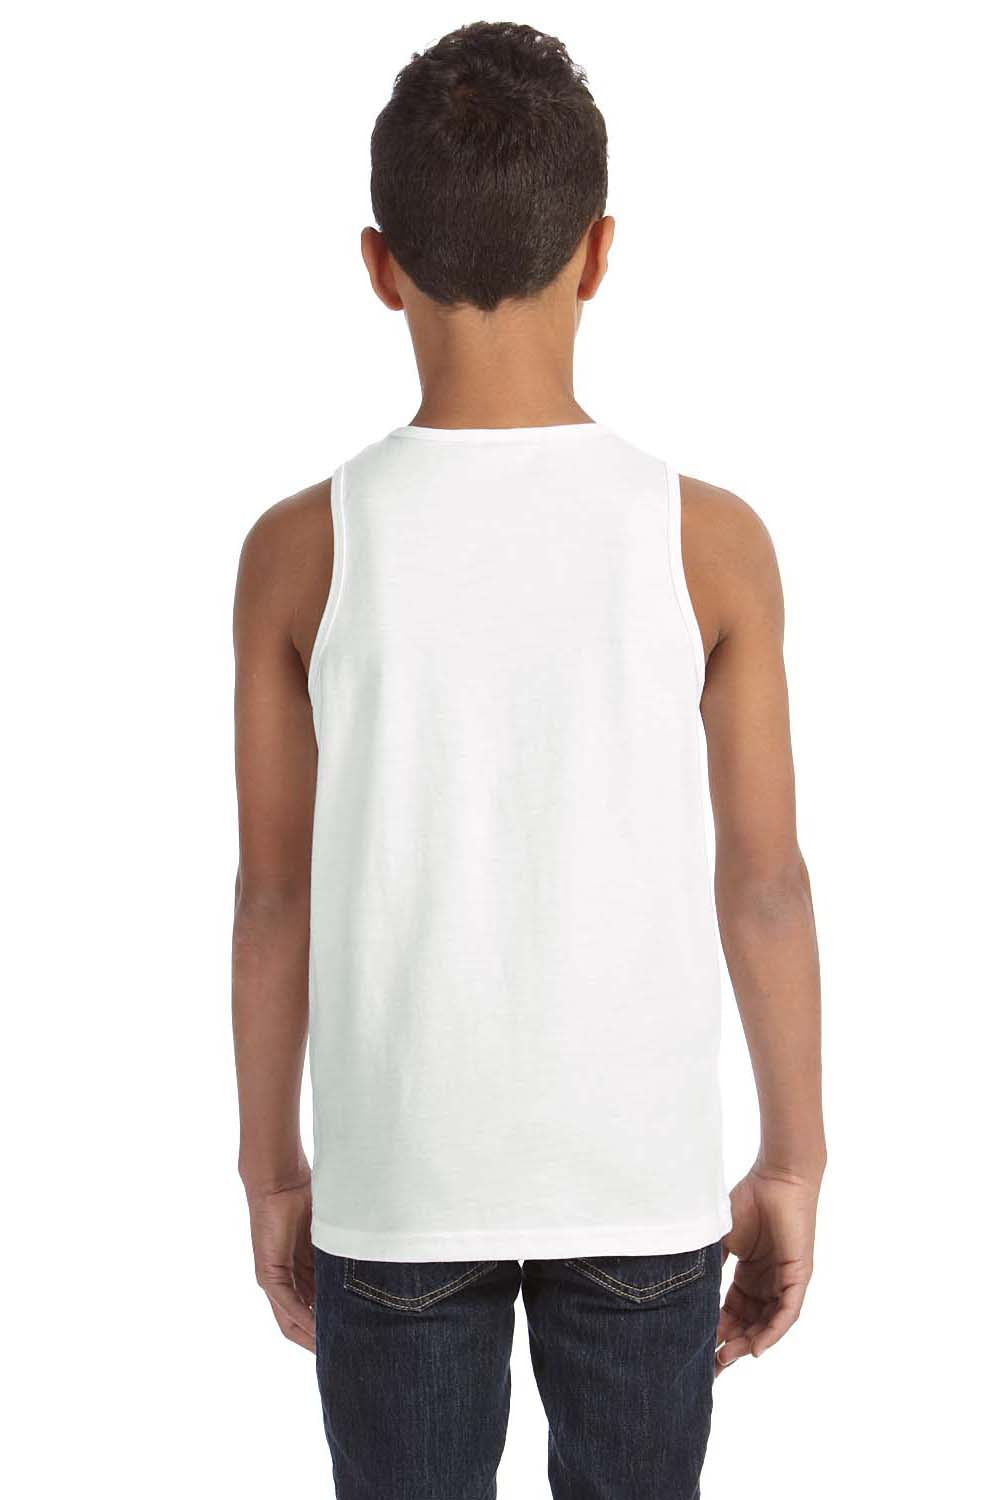 Bella + Canvas 3480Y Youth Jersey Tank Top White Back